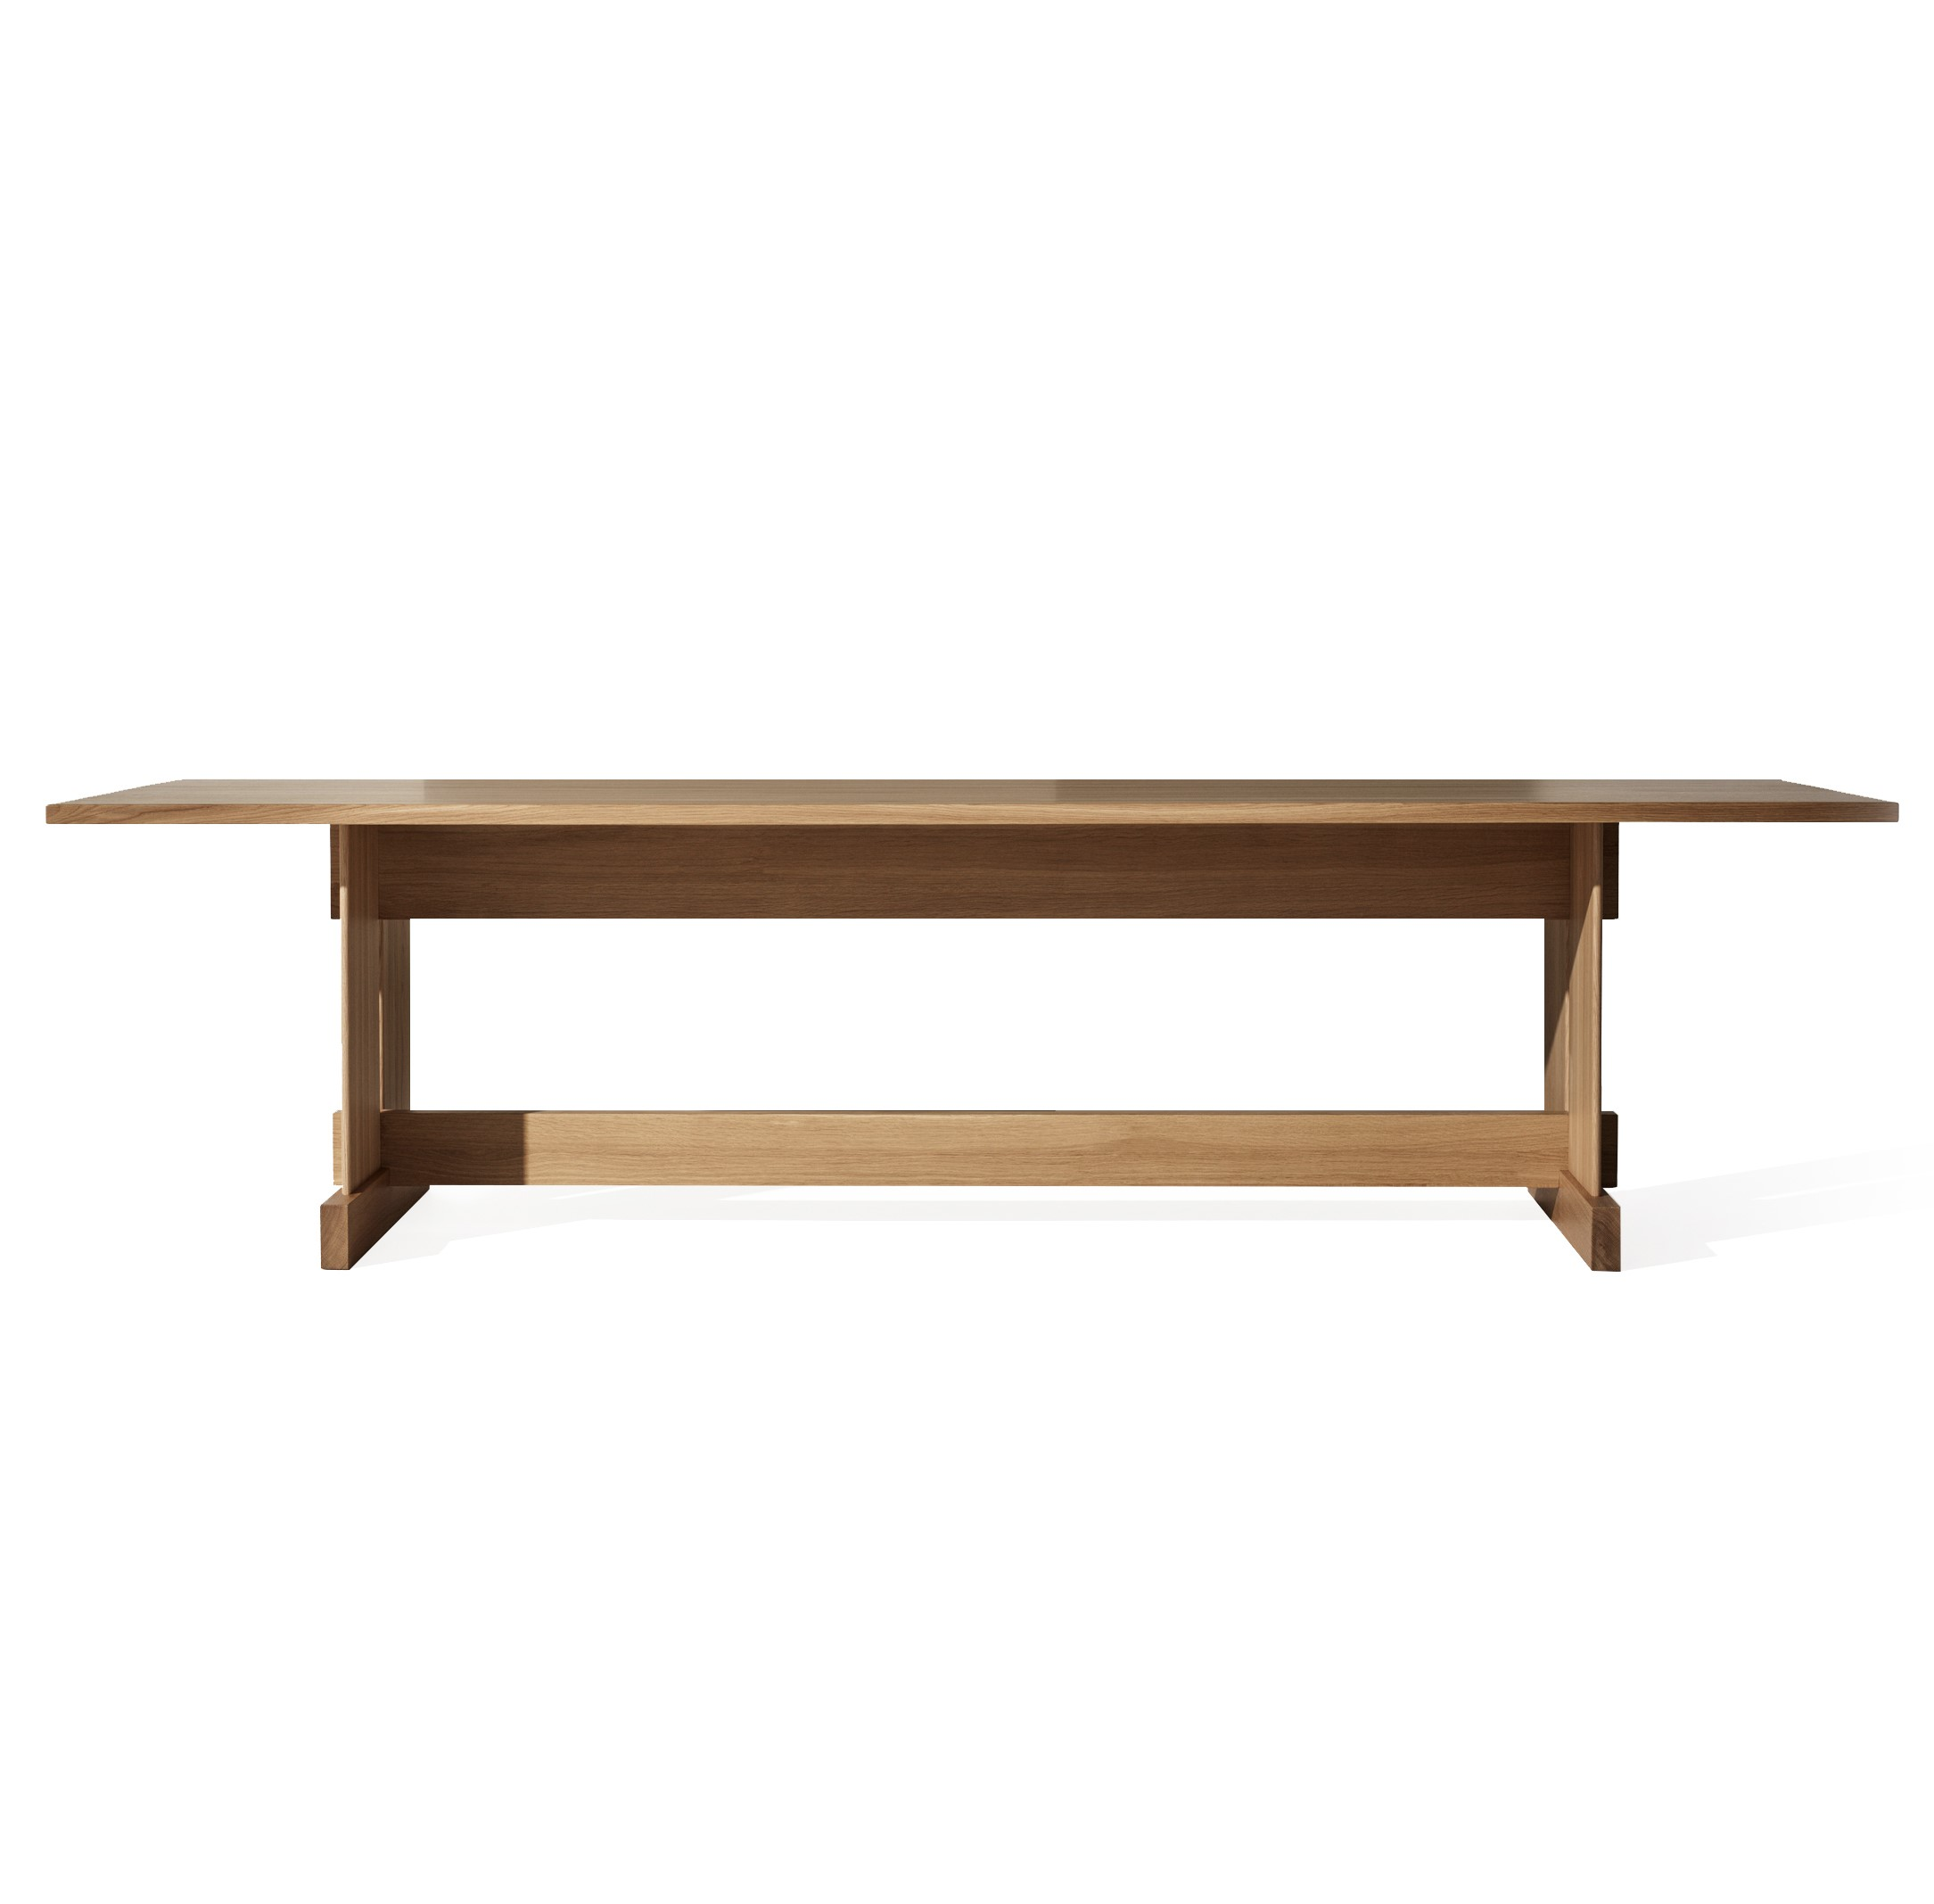 Fogia Grande Dining Table